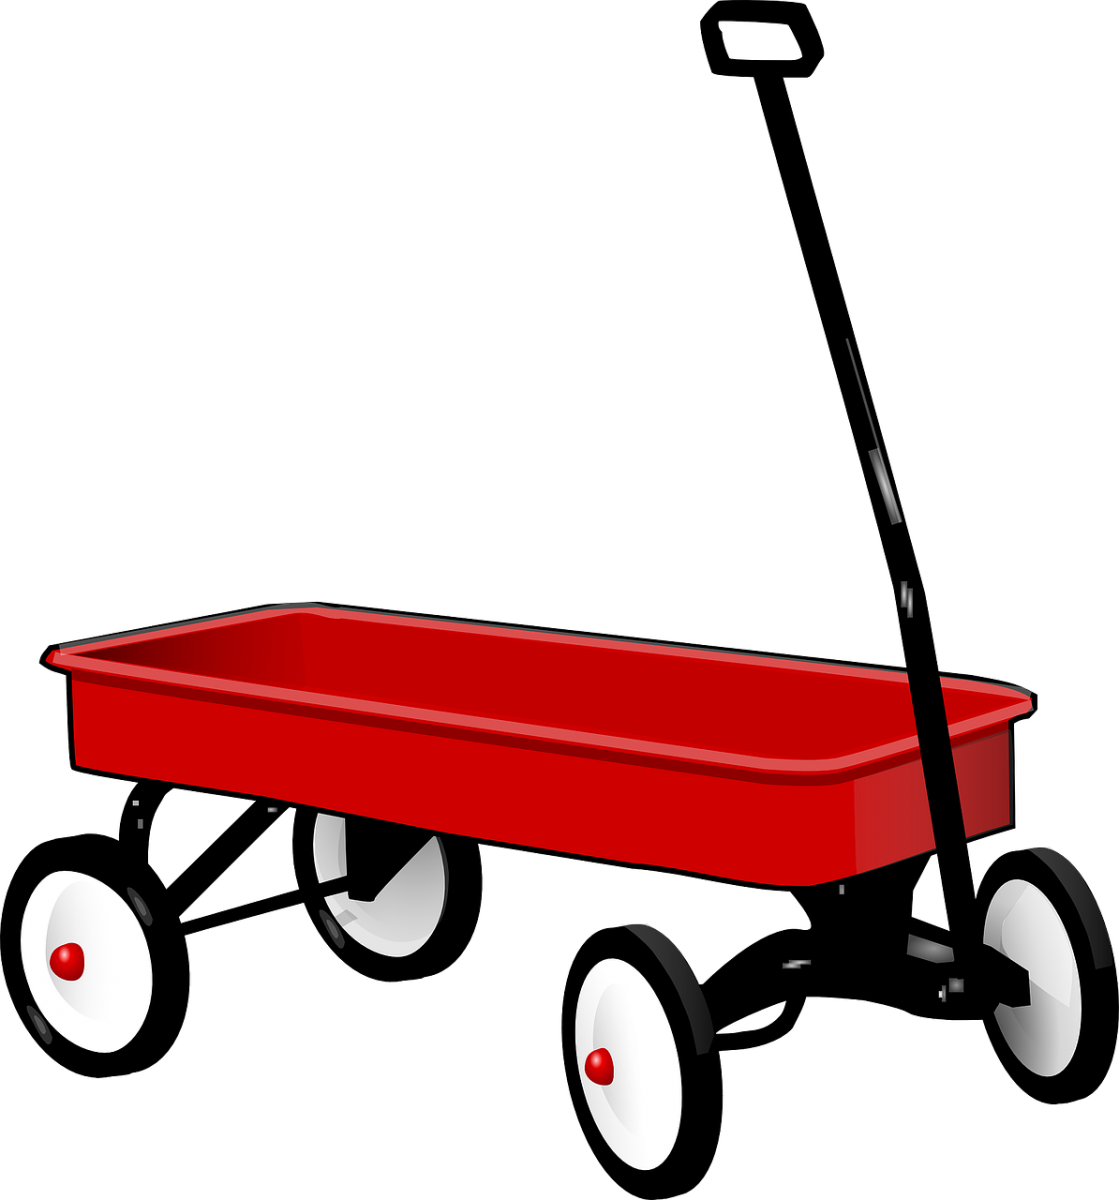 Little red png transparent. Wagon clipart old style